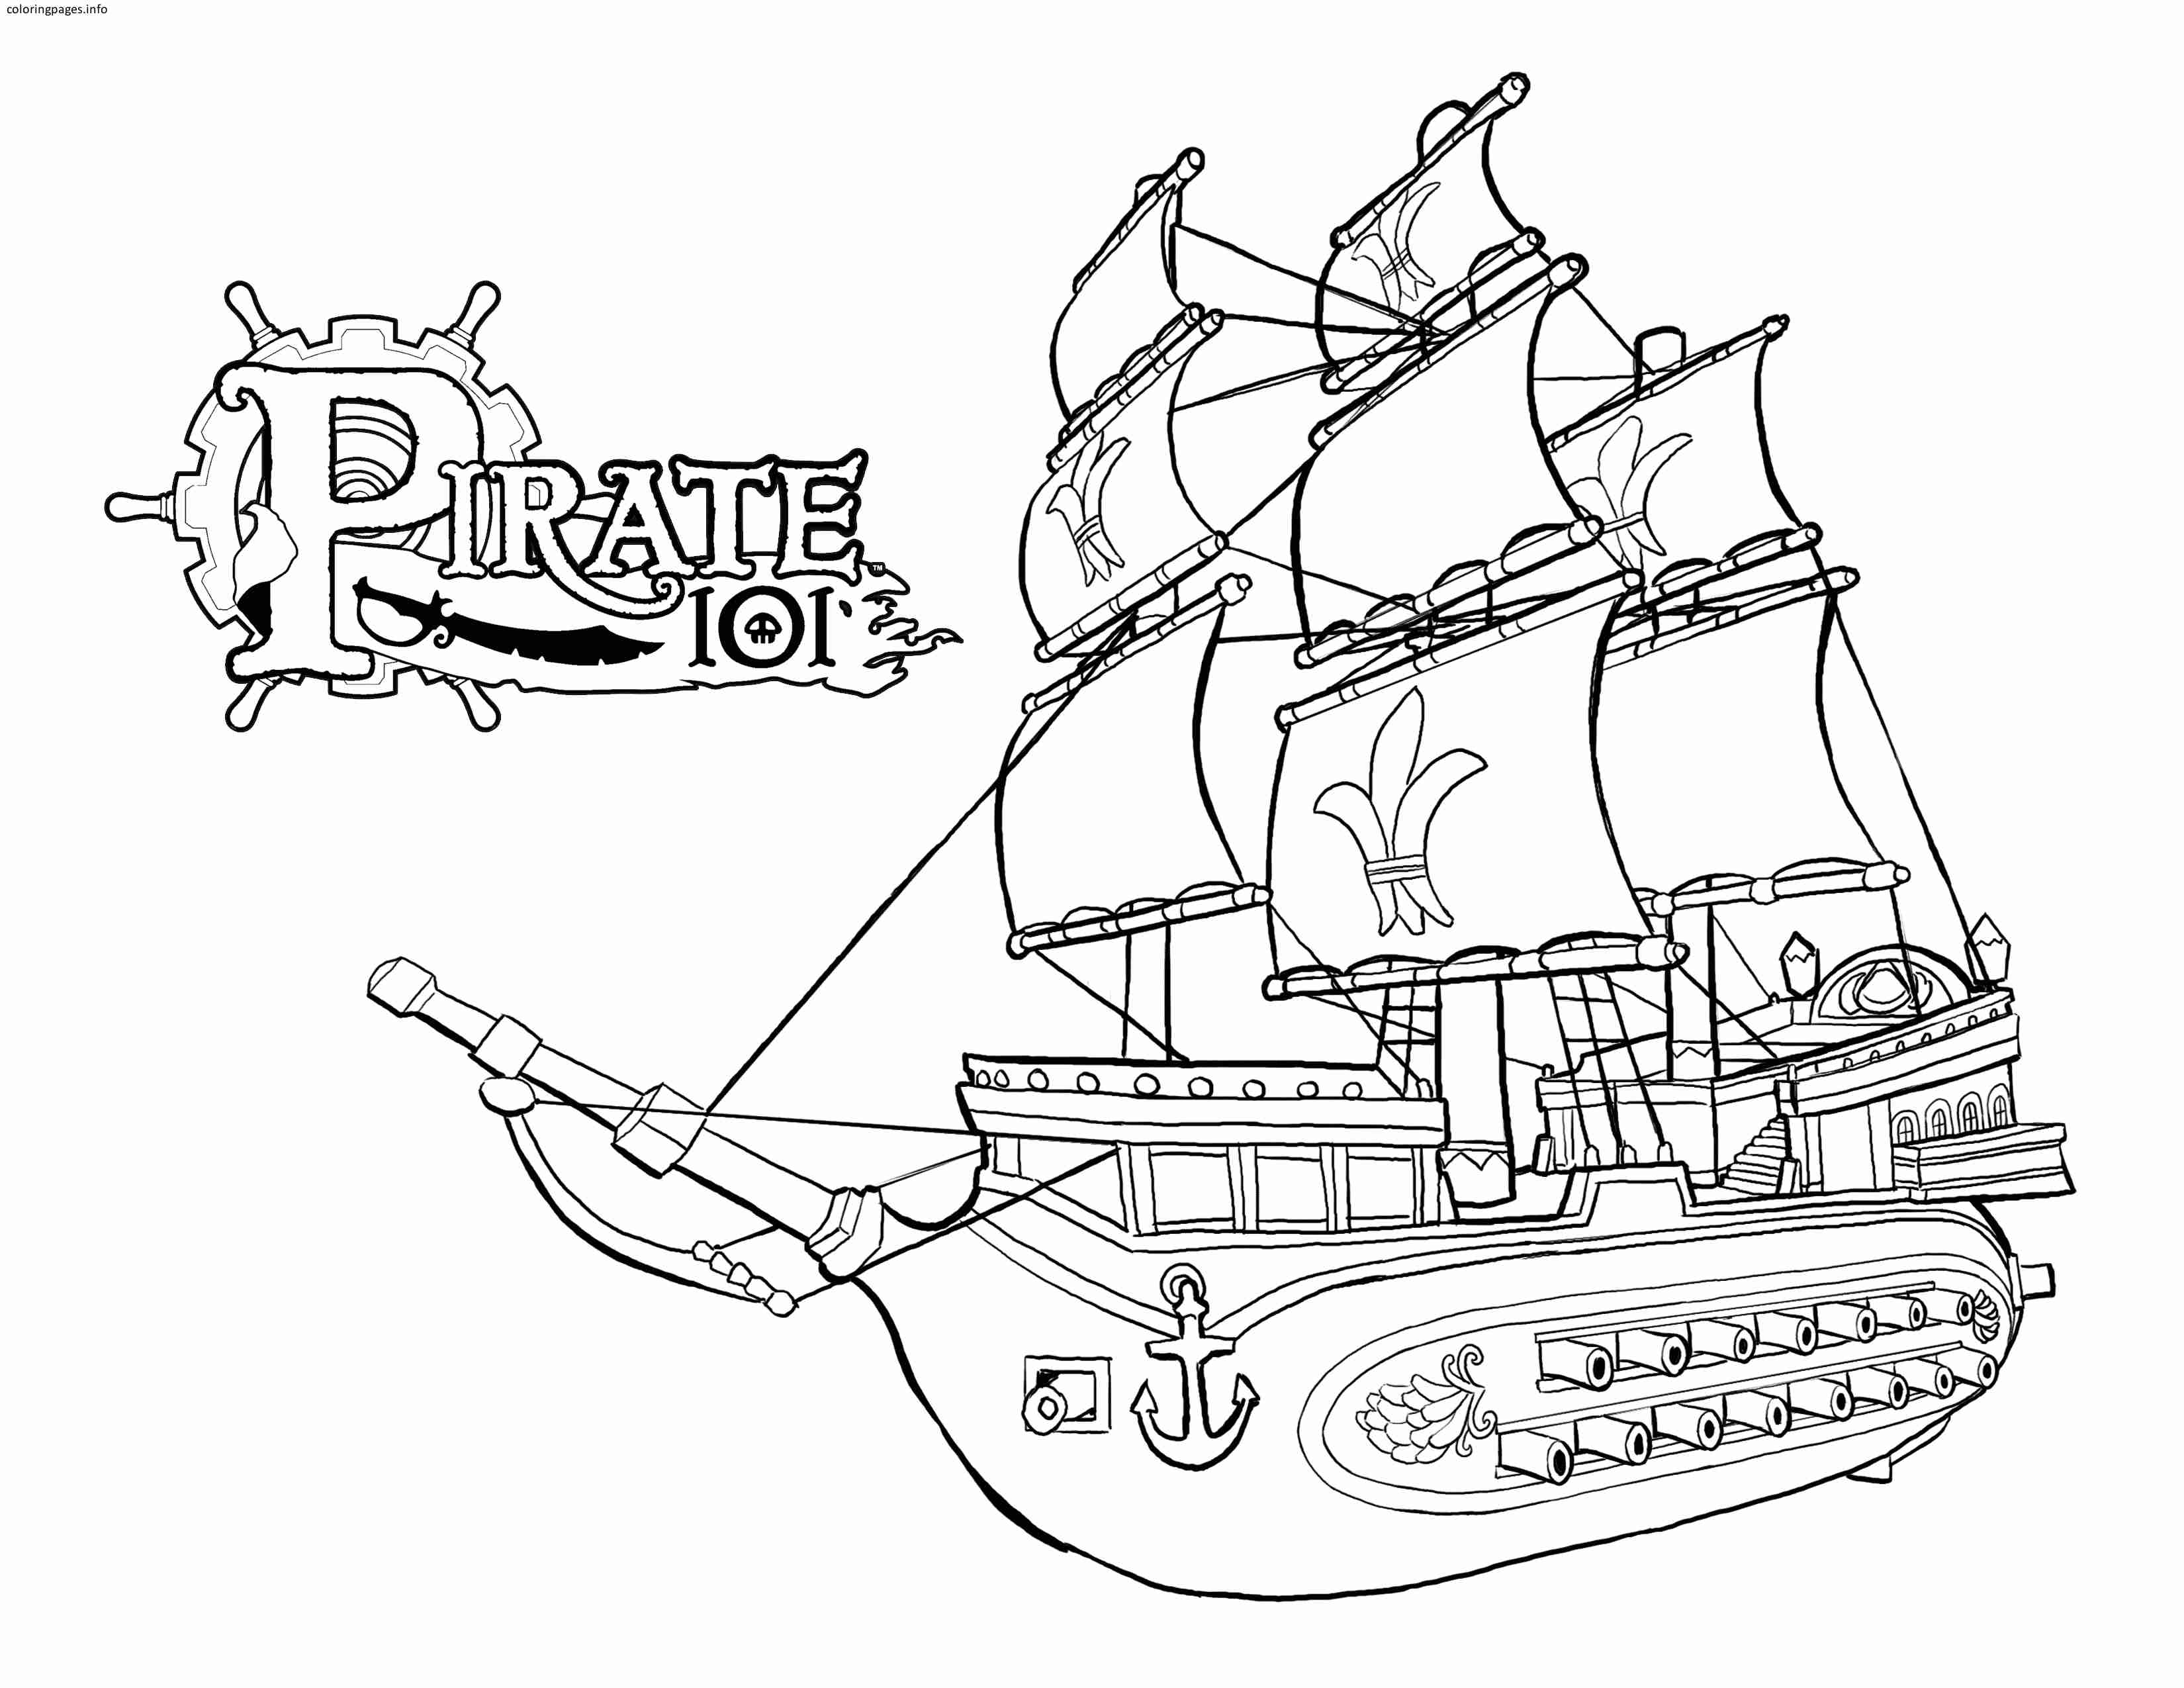 pirate lego coloring pages lego pirate coloring pages at getcoloringscom free pirate pages coloring lego